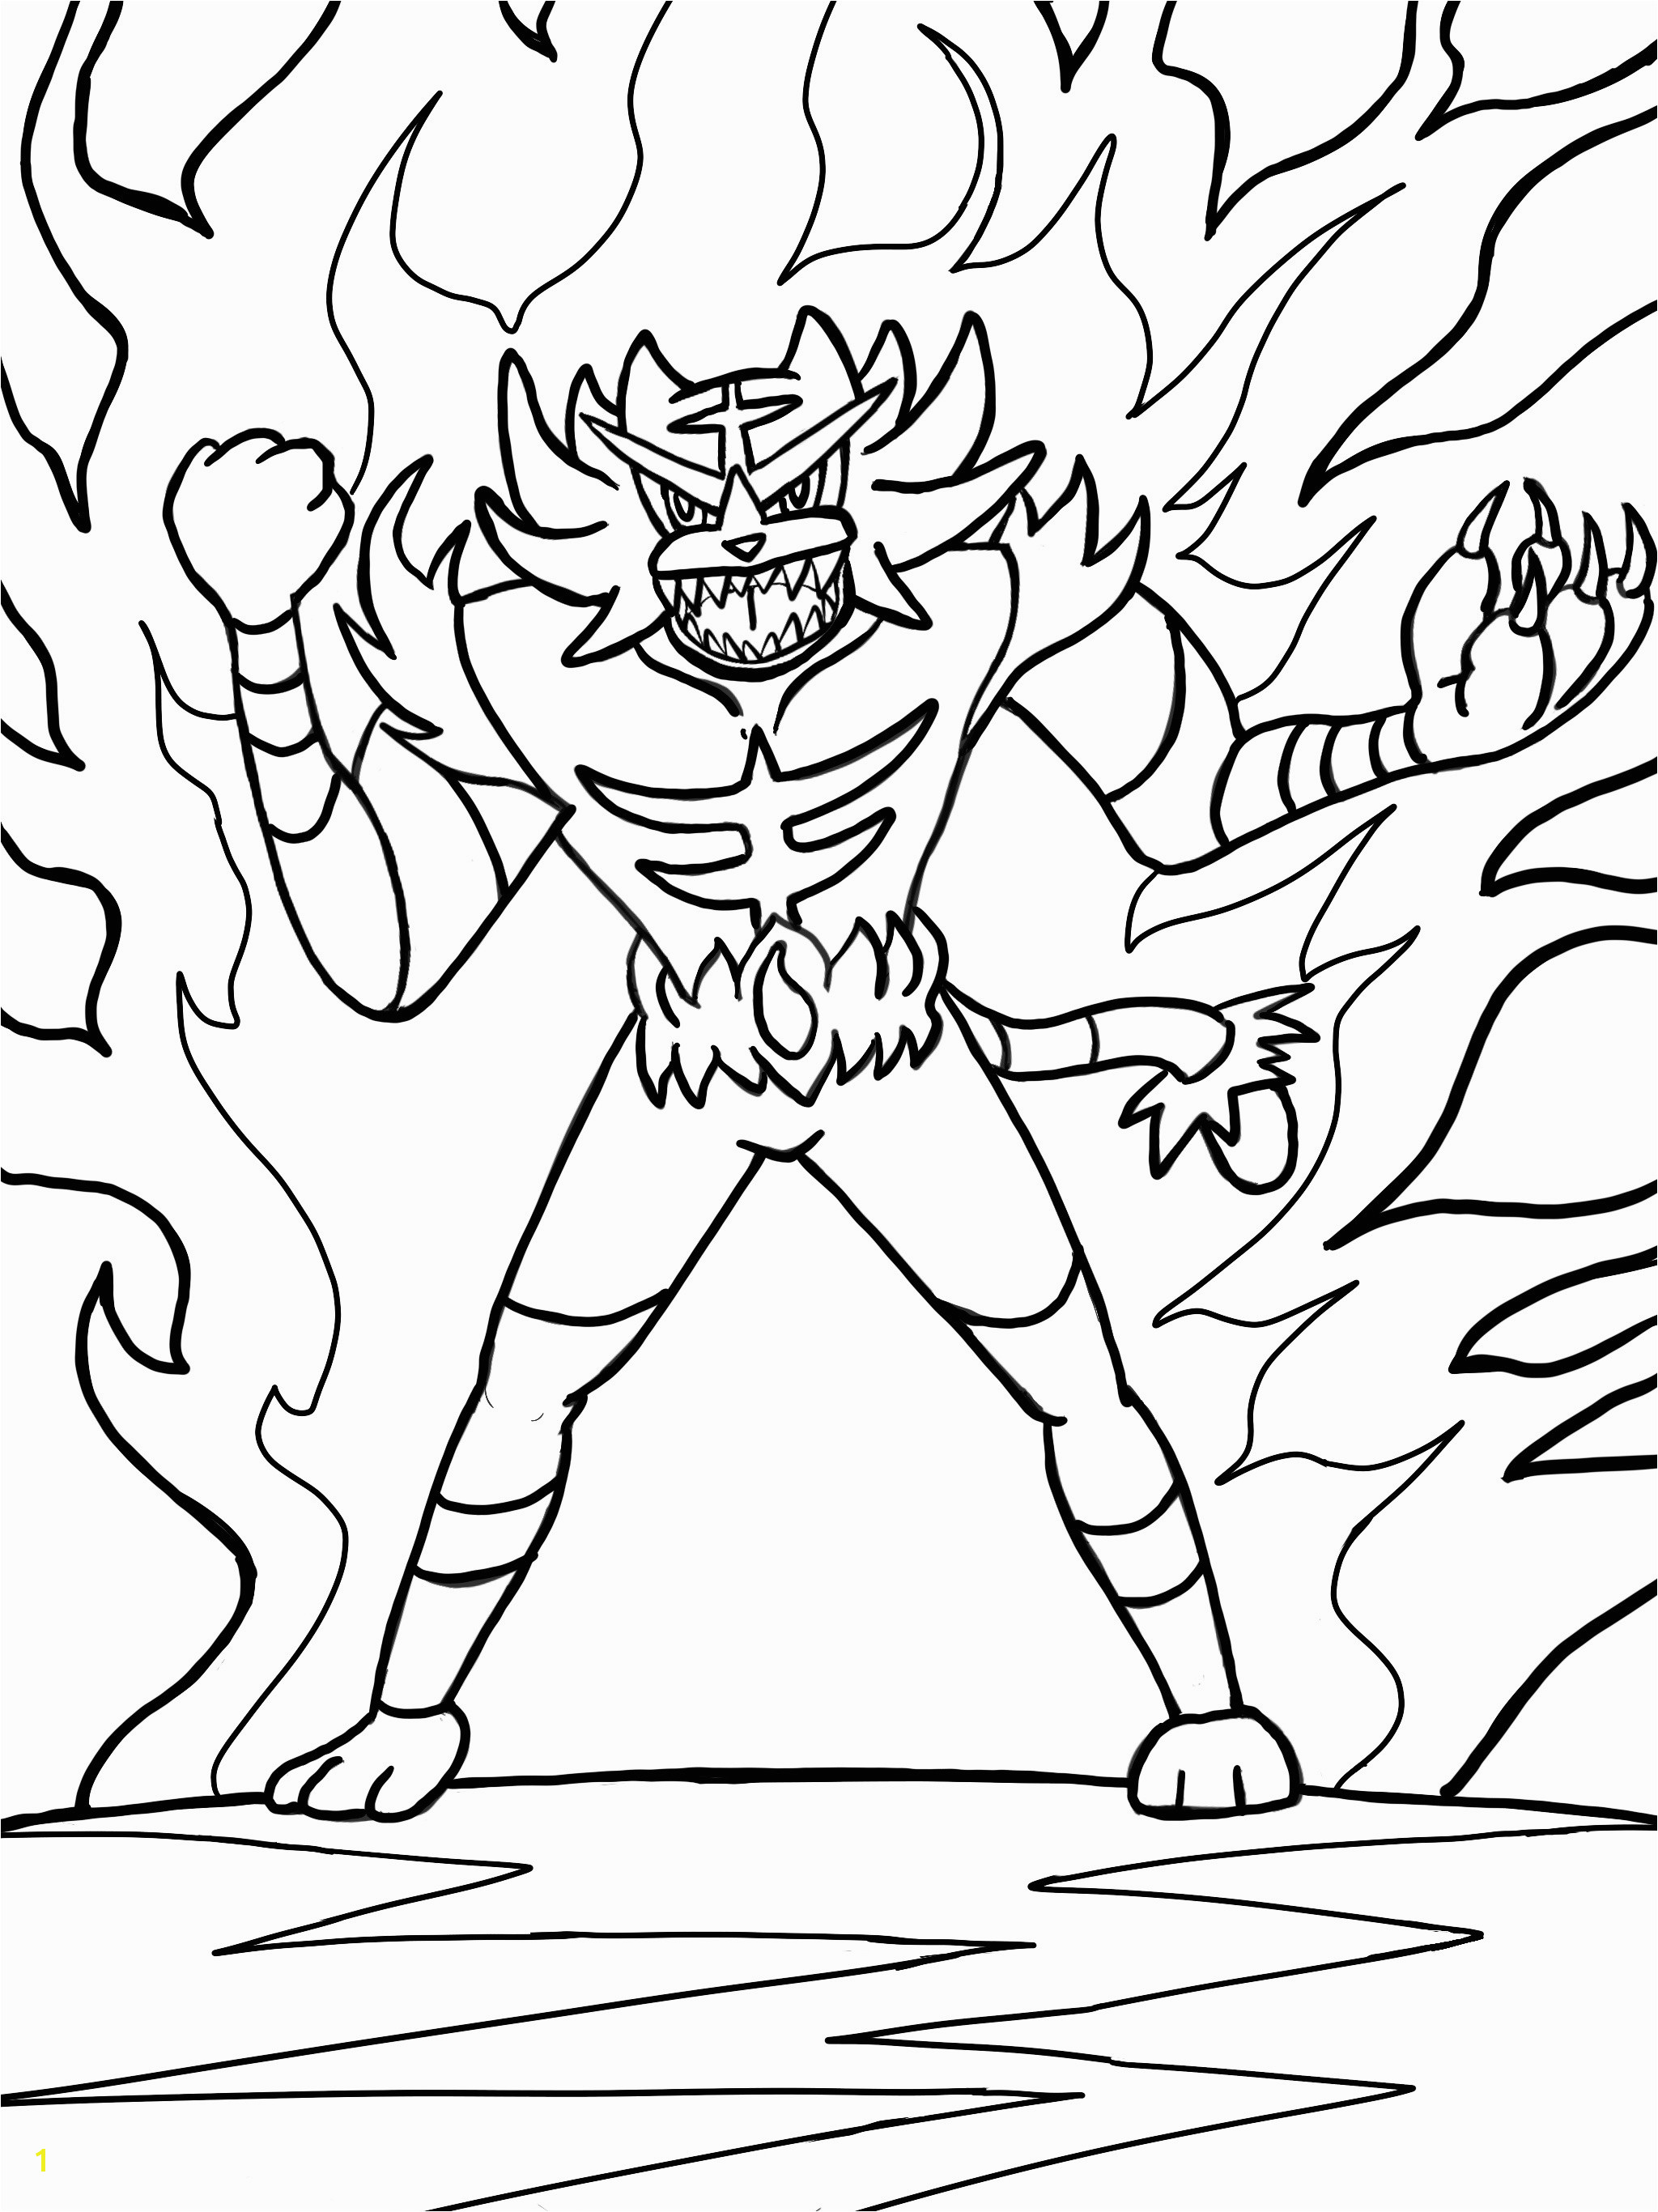 Pokemon Sun and Moon Coloring Pages Printables Colouring Pages to Download